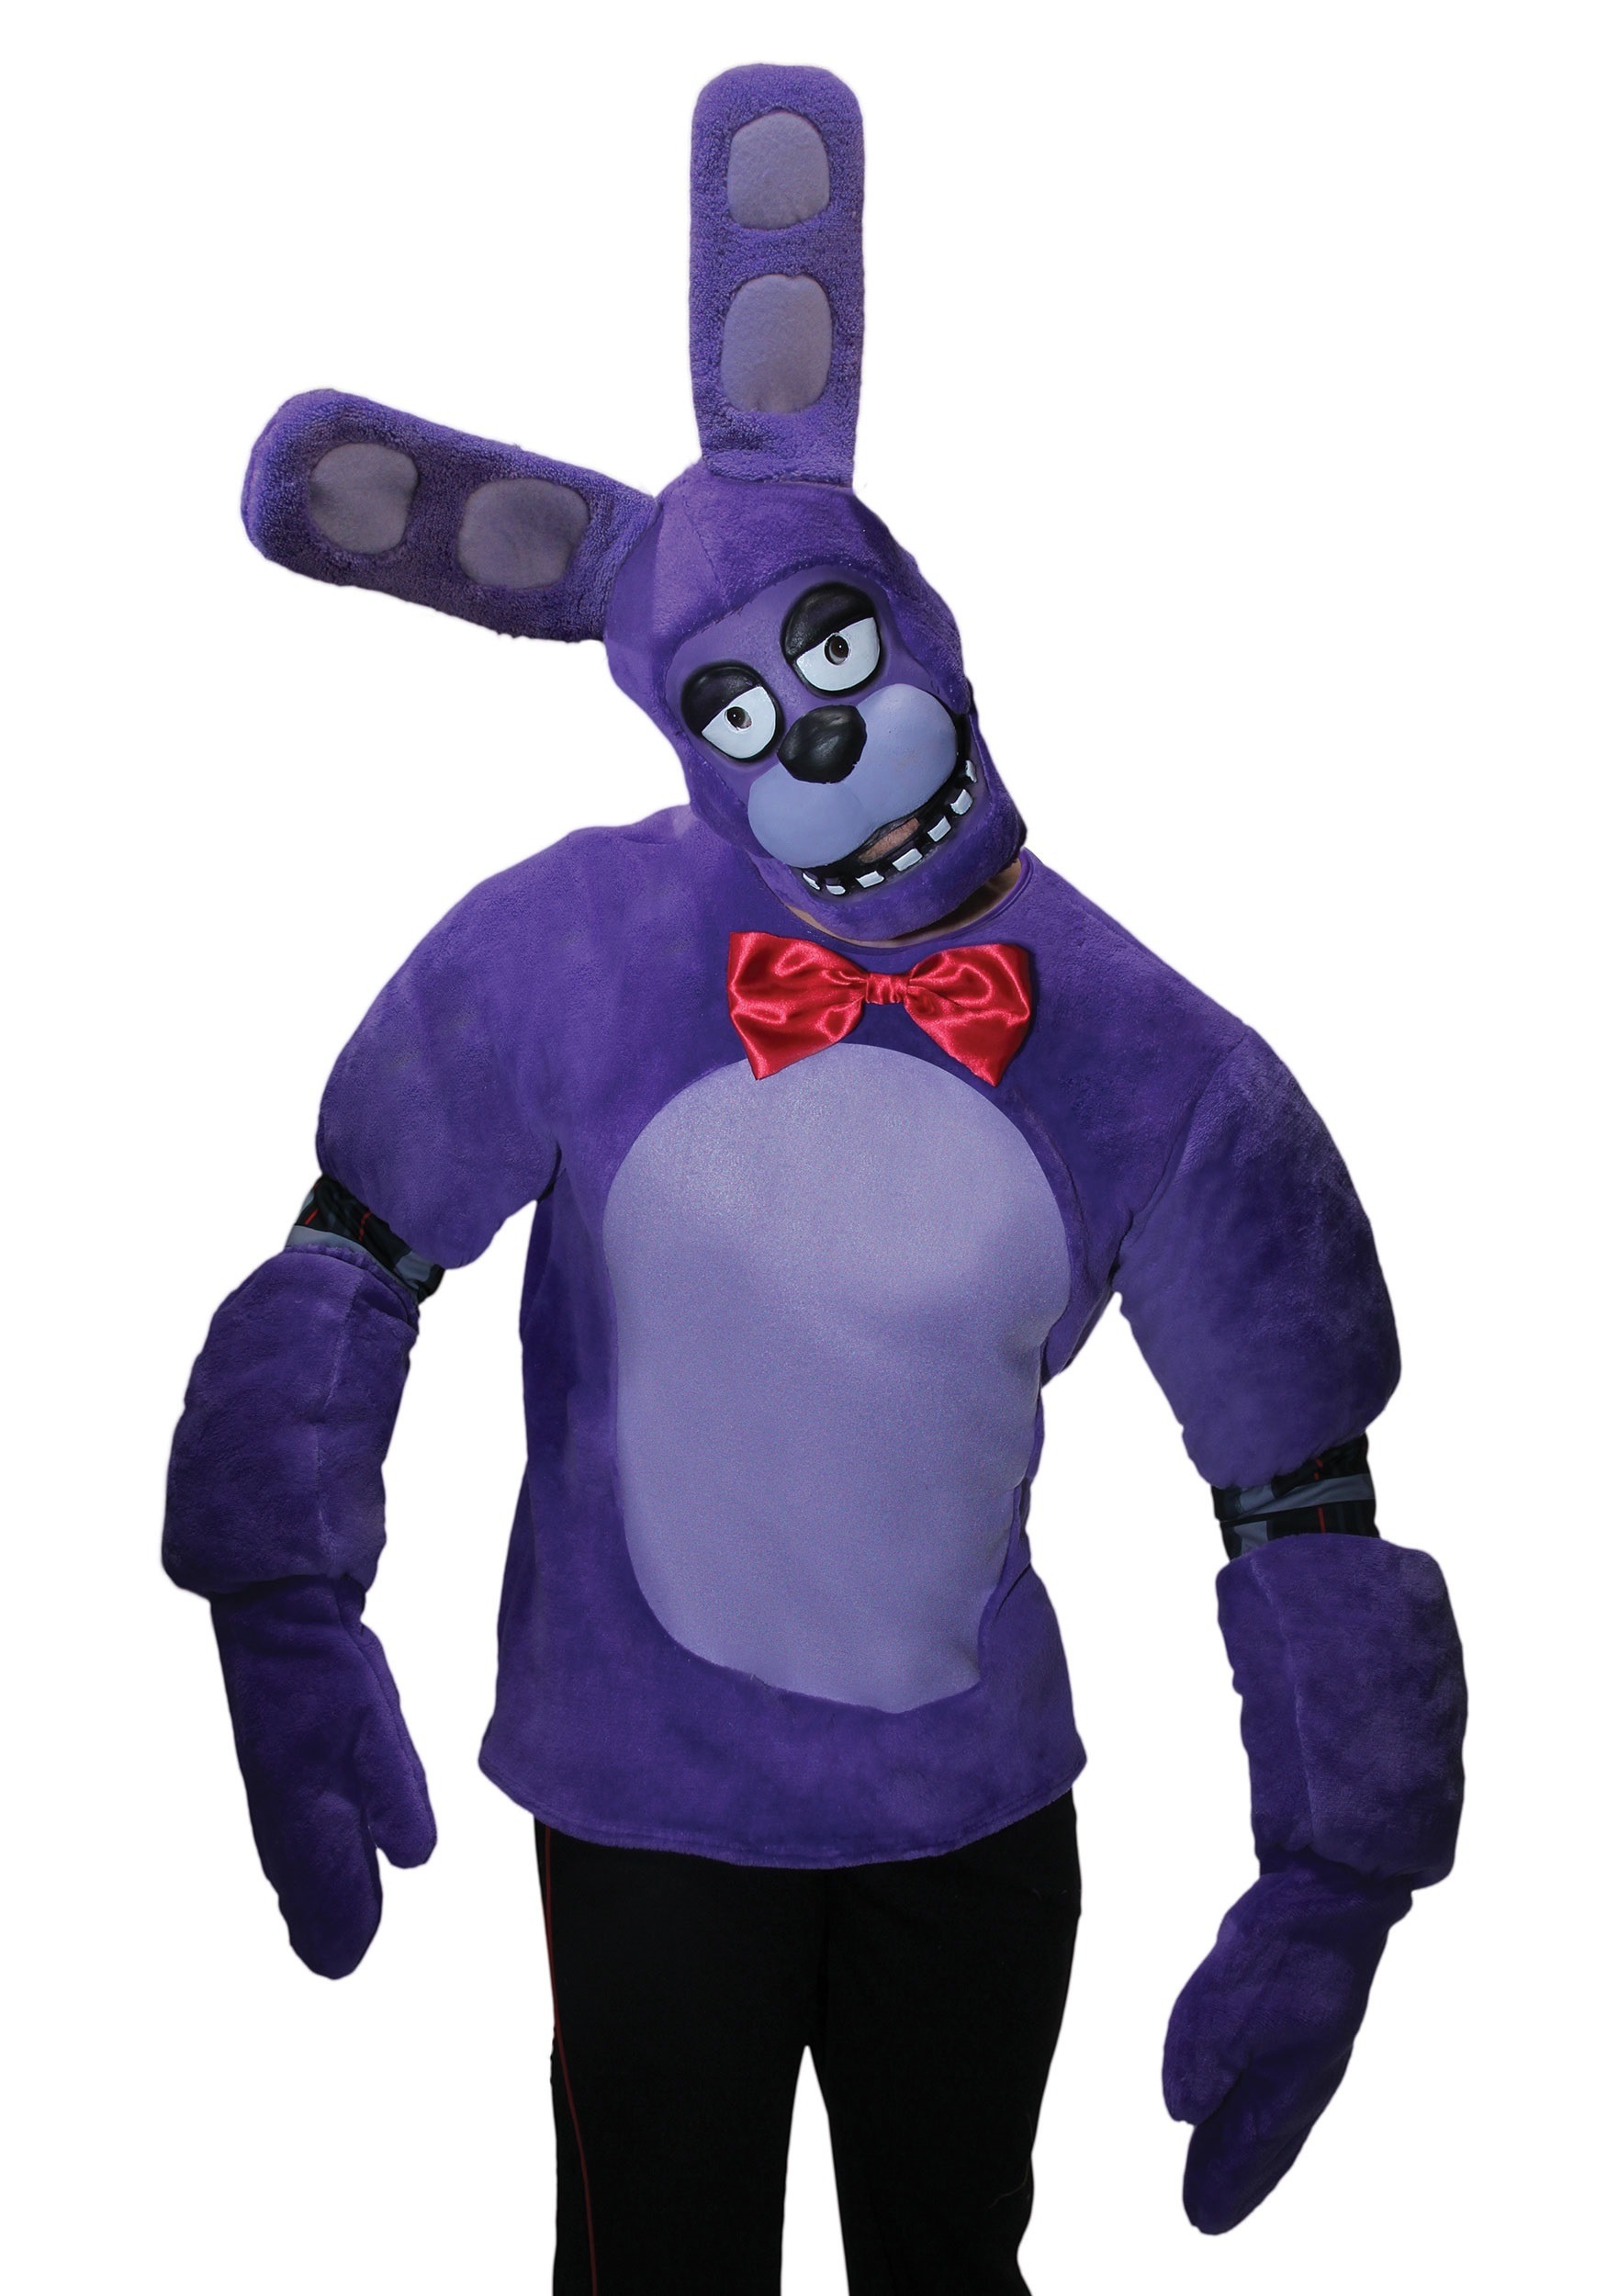 Fnaf bonnie costume for sale - Fnaf Adult Bonnie Costume